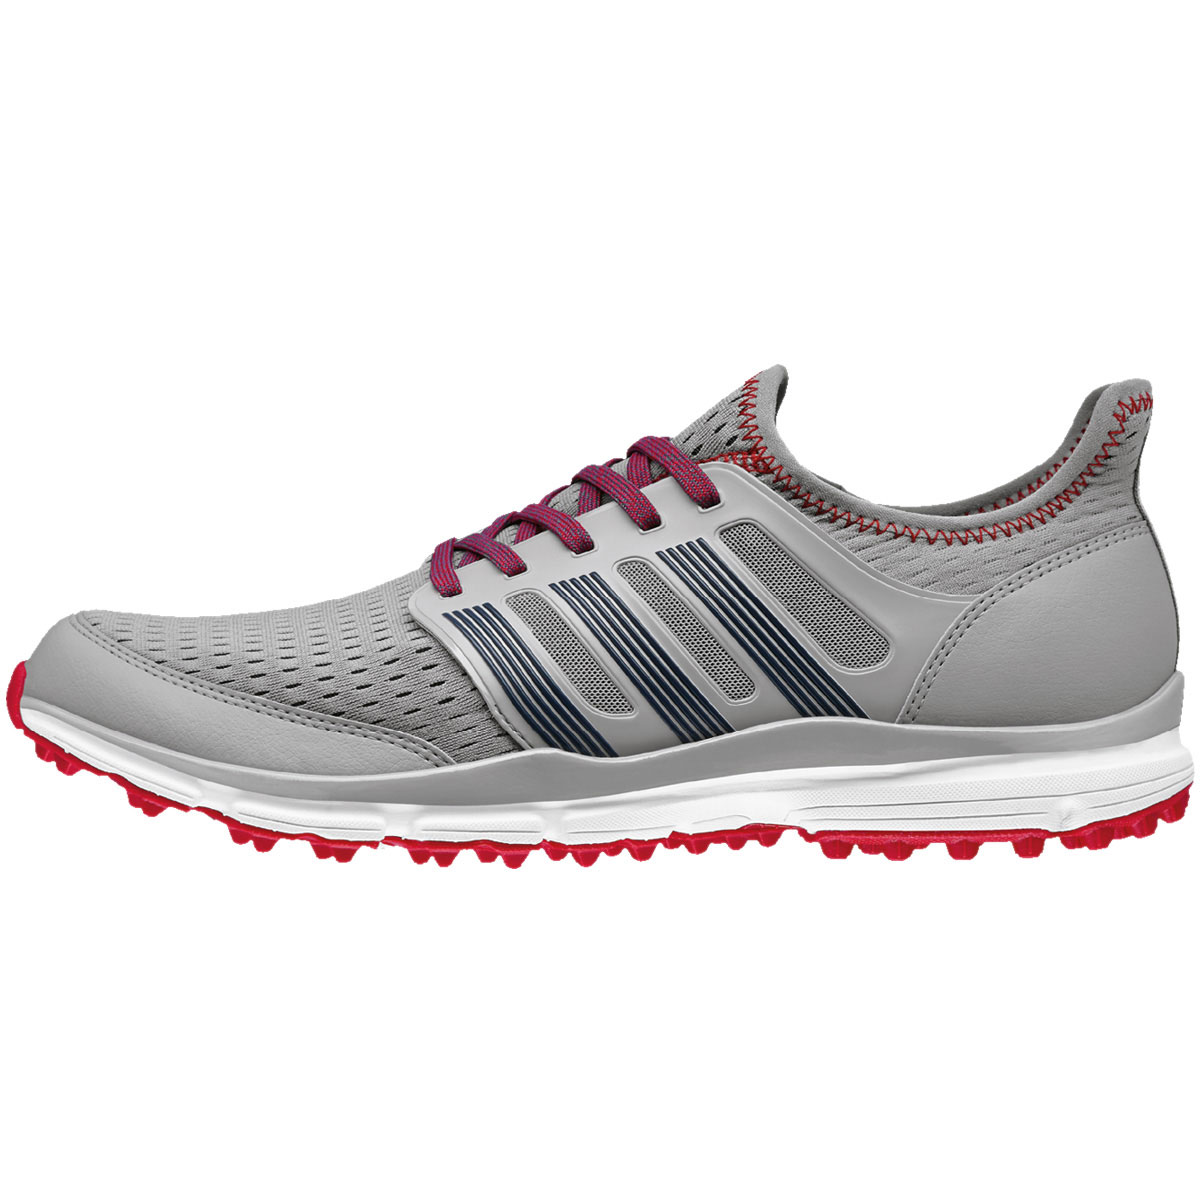 Adidas Puremotion Spikeless Golf Shoes